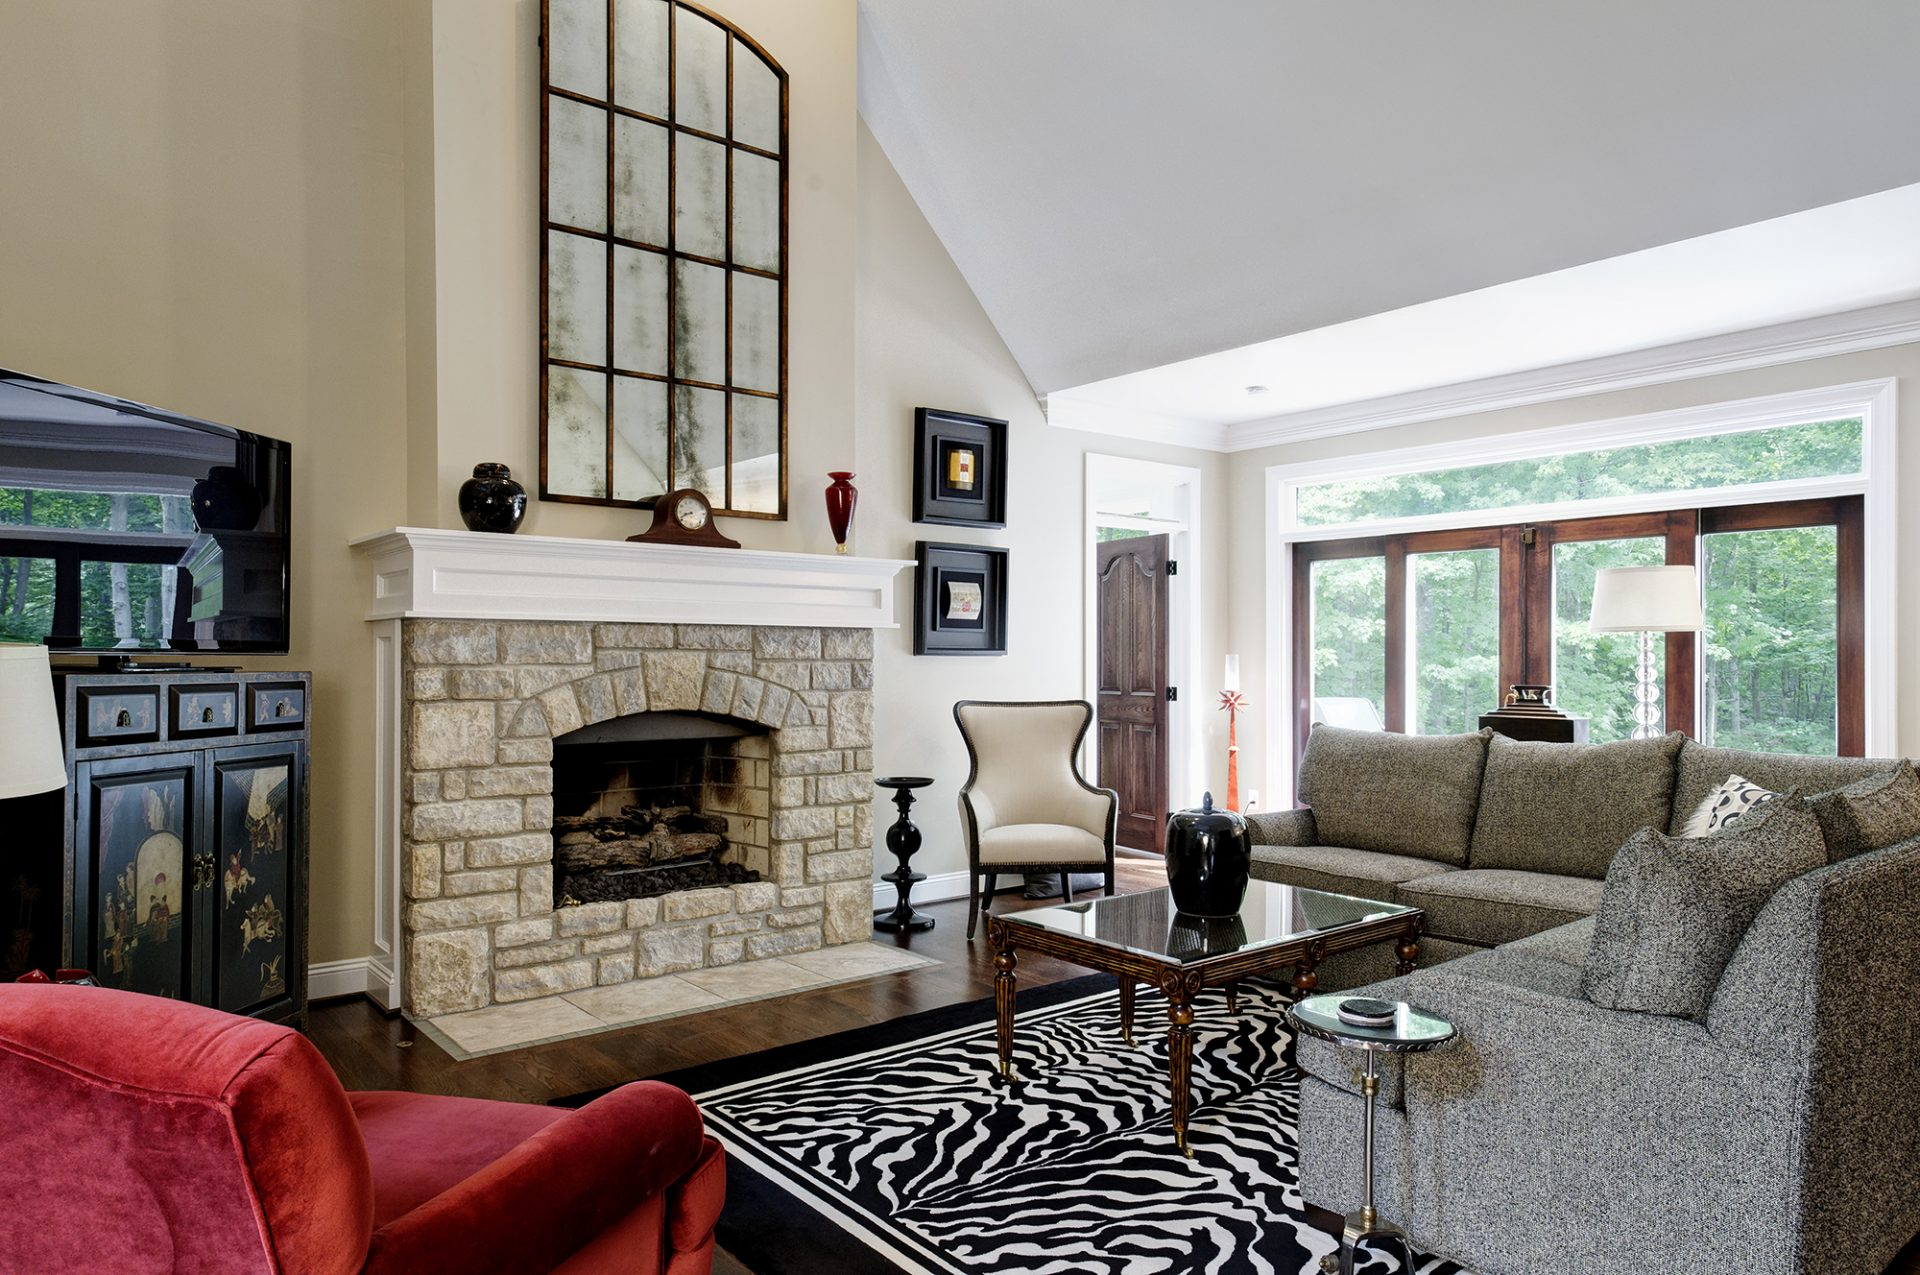 Fireplace, Living Room, Westerville, Dave Fox, Remodel, high ceilings, vaulted ceilings, stone, stacked stone